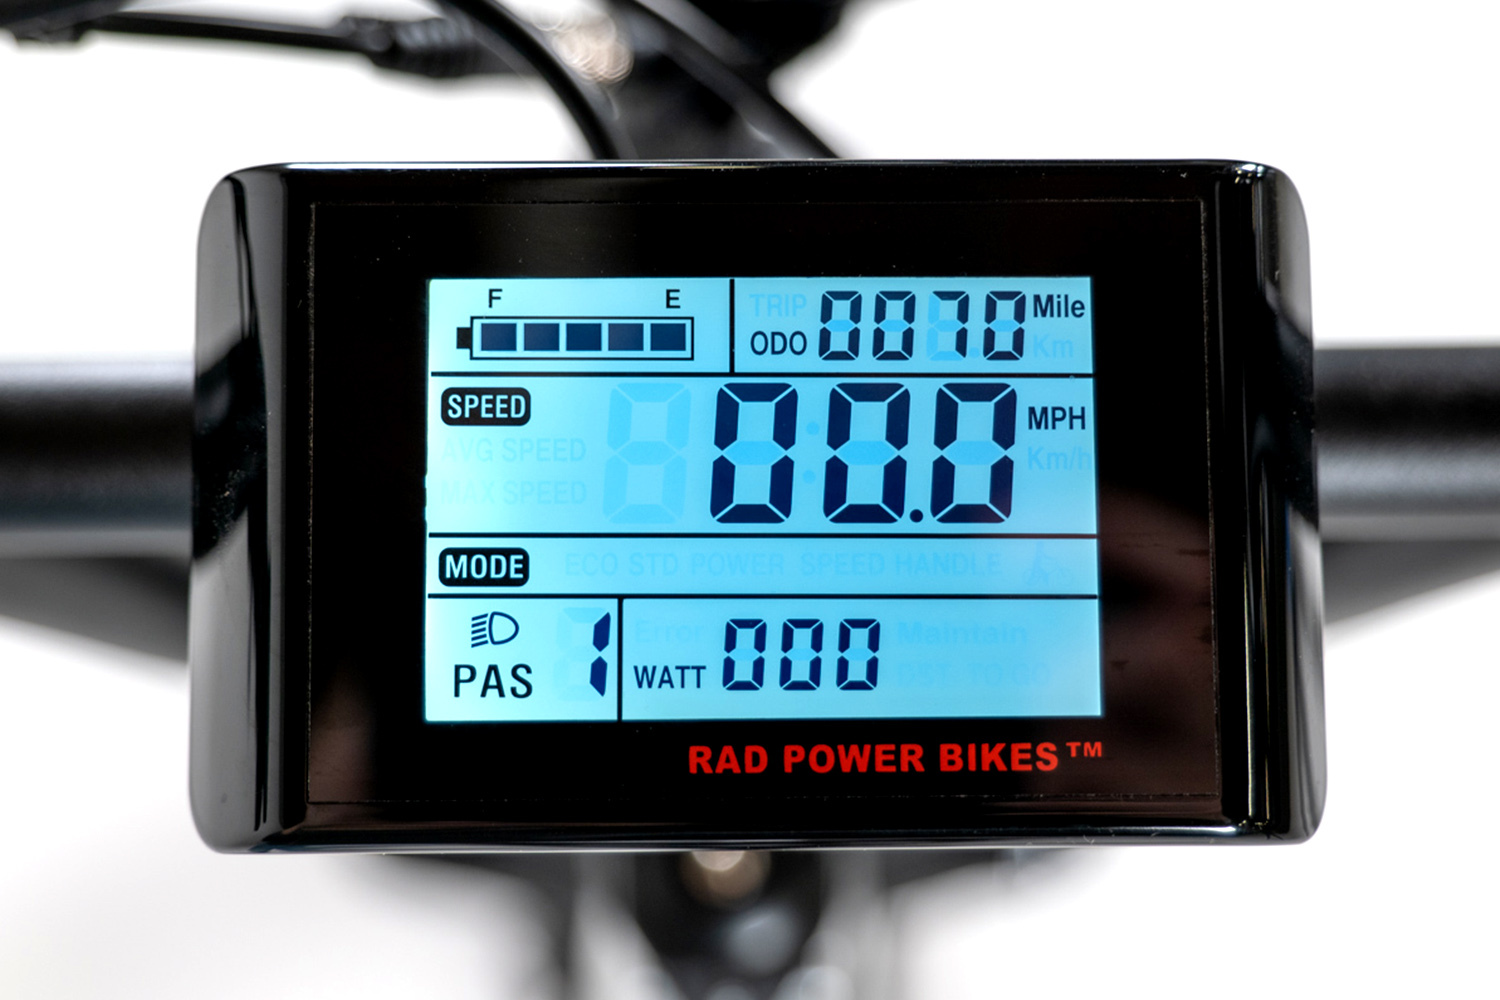 RadRover Electric Fat Bike Version 5 display